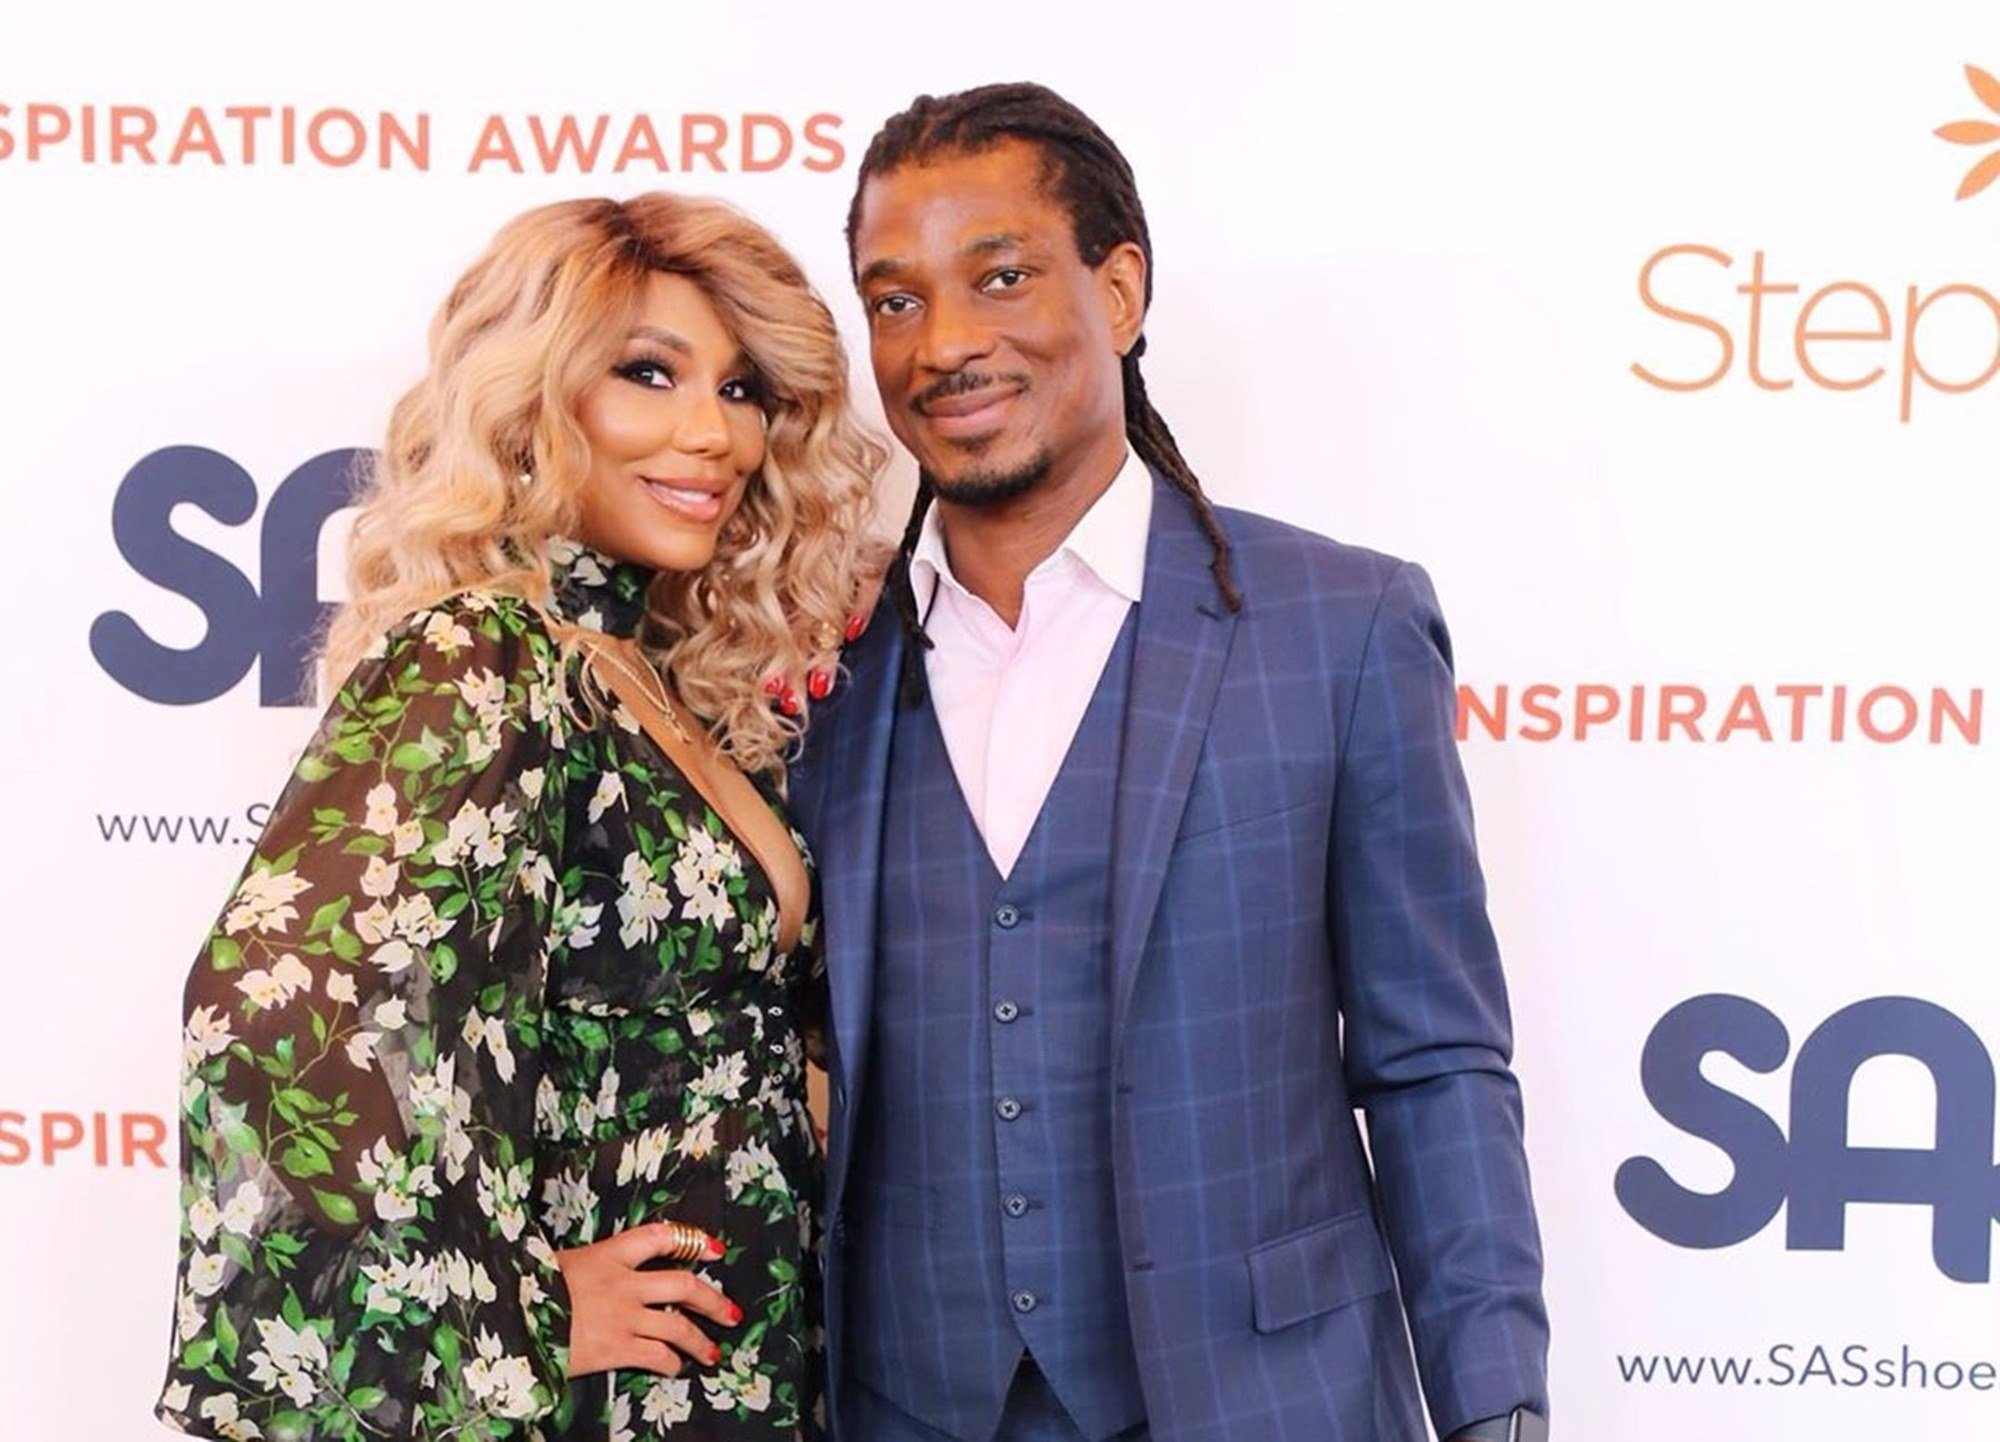 Tamar Braxton Shares Engagement Video And Praises David Adefeso For Saving Her Life And Being Her Rock